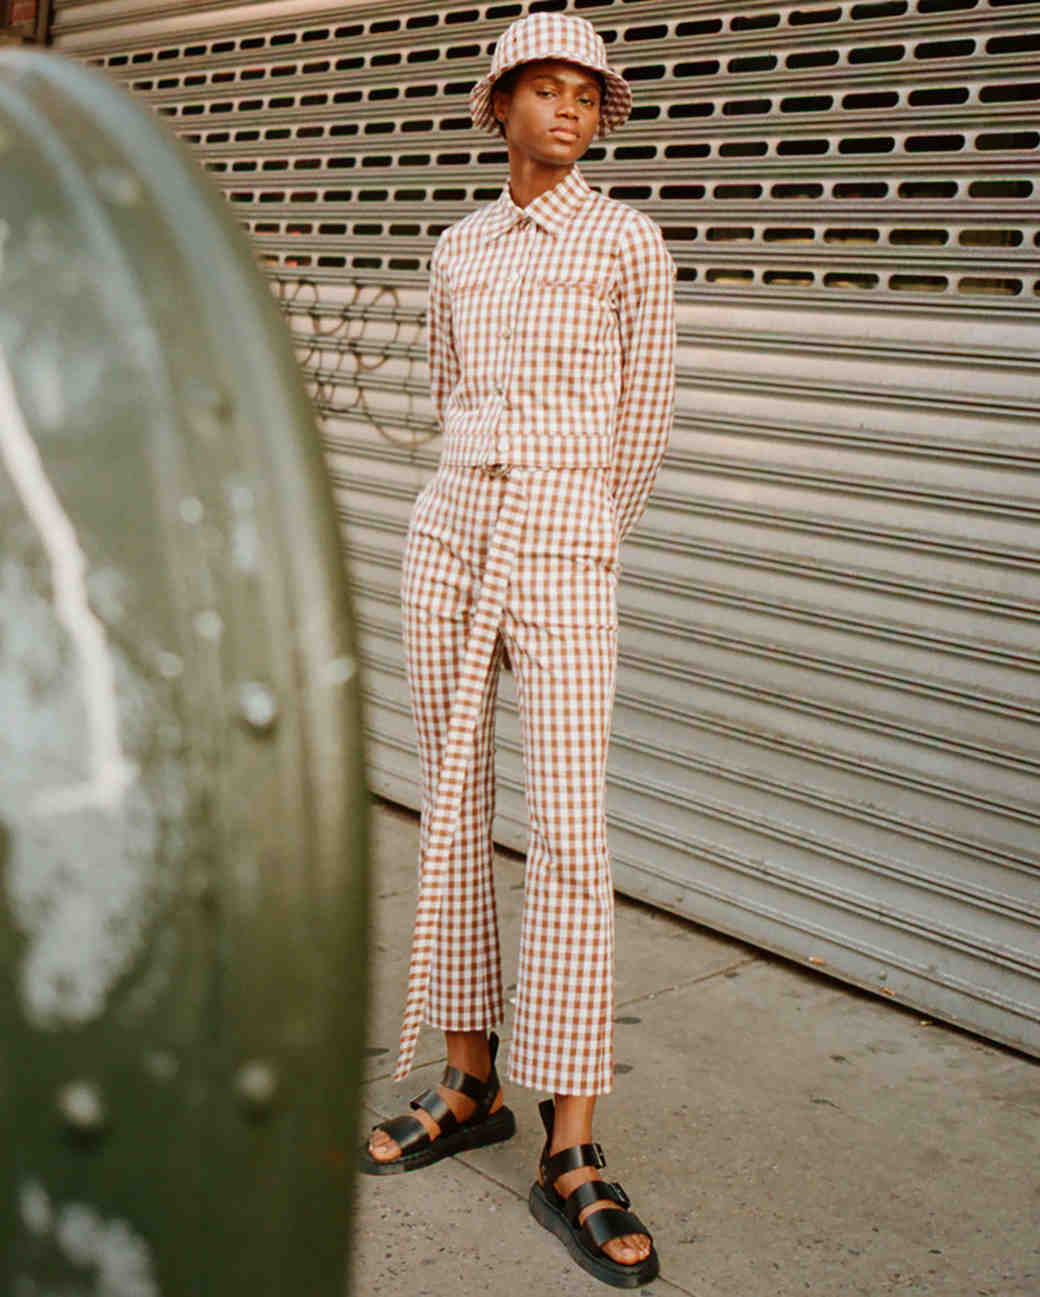 lein fall 2019 belted brown checker patterned pant suit